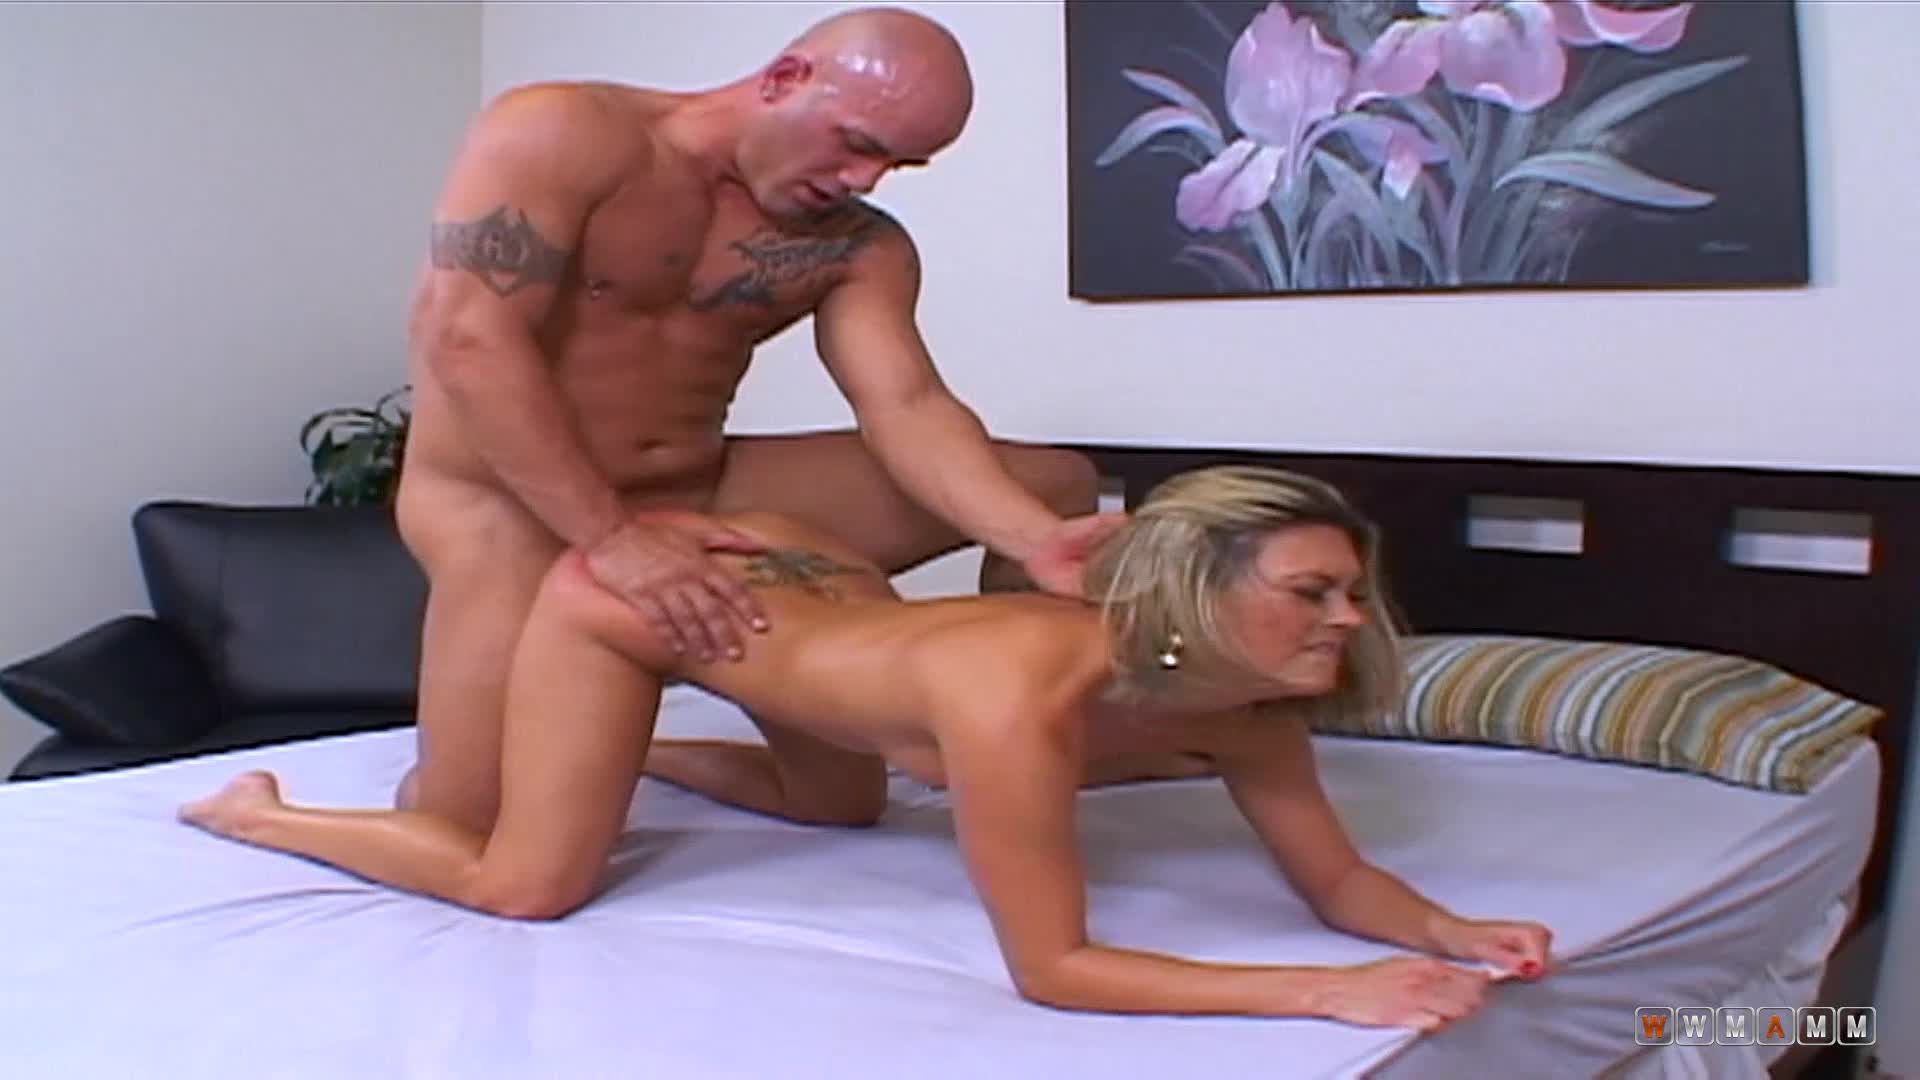 Adriana Amante Wants A Guy To Make Her Pussy Wet And Her Ass Red